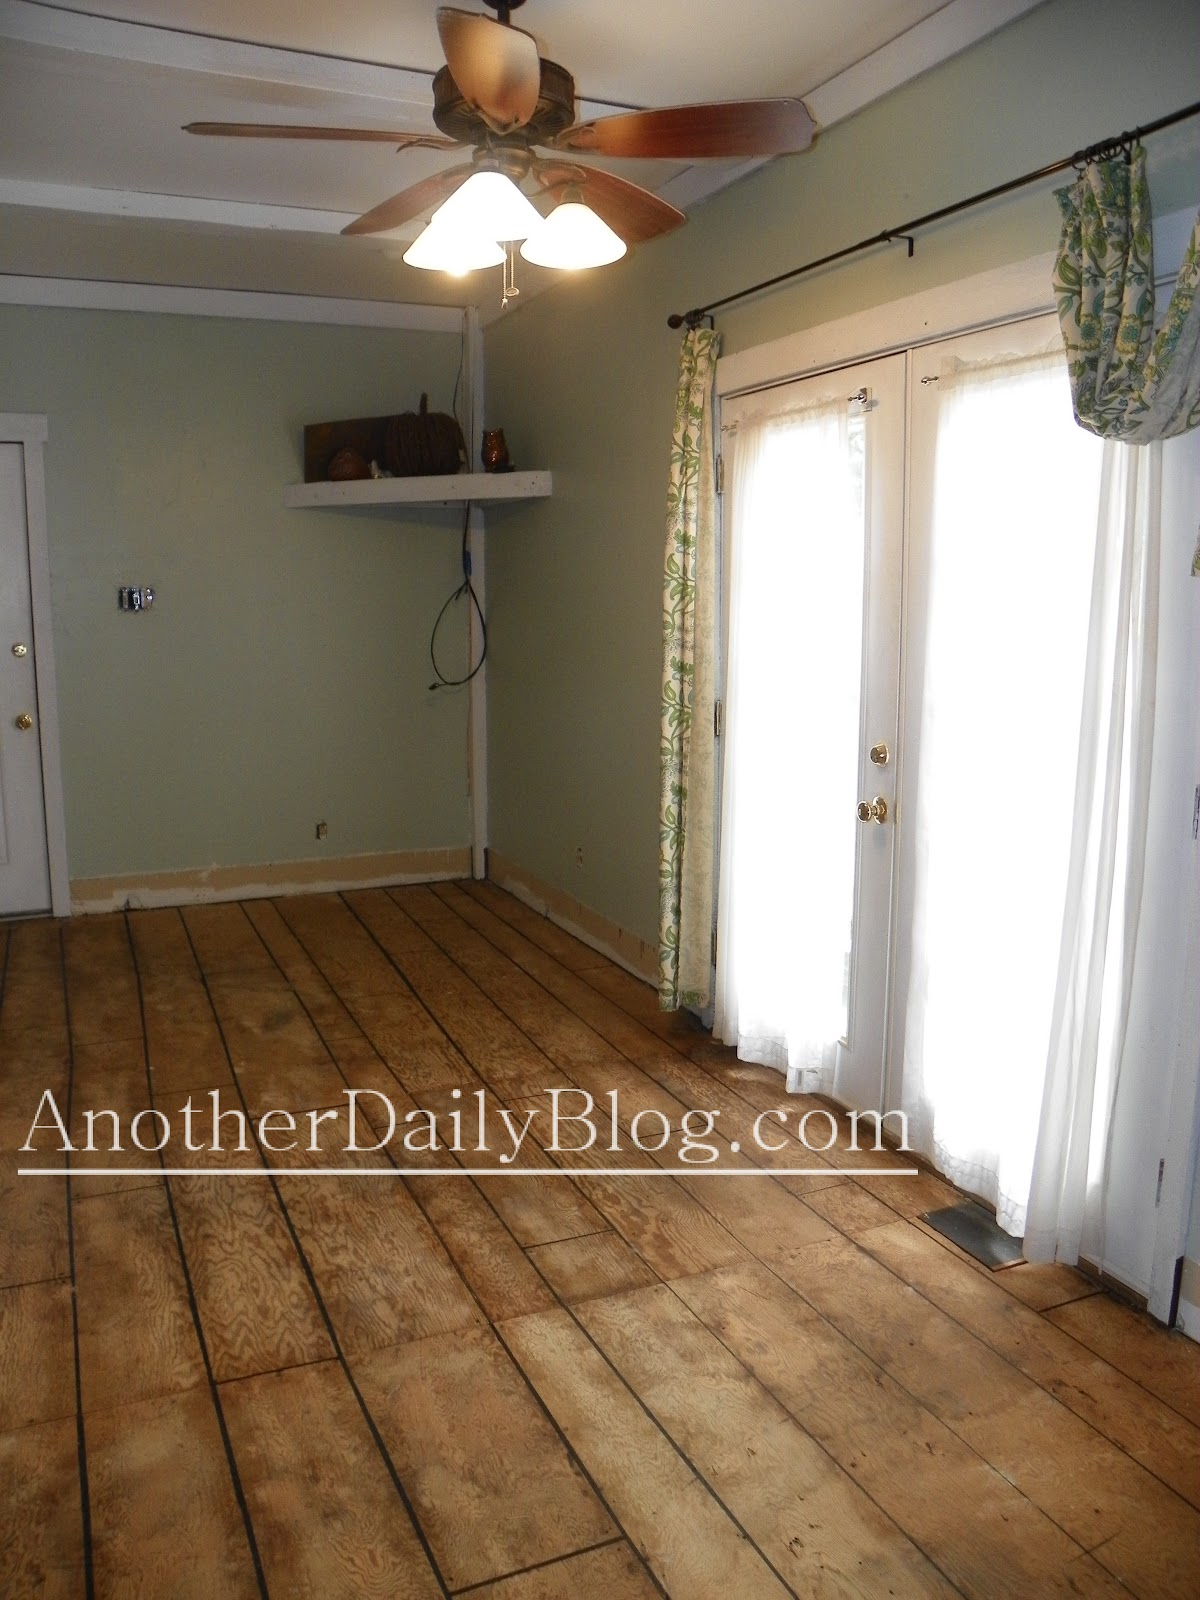 Another Daily Blog Diy How To Make Plywood Subfloor Look